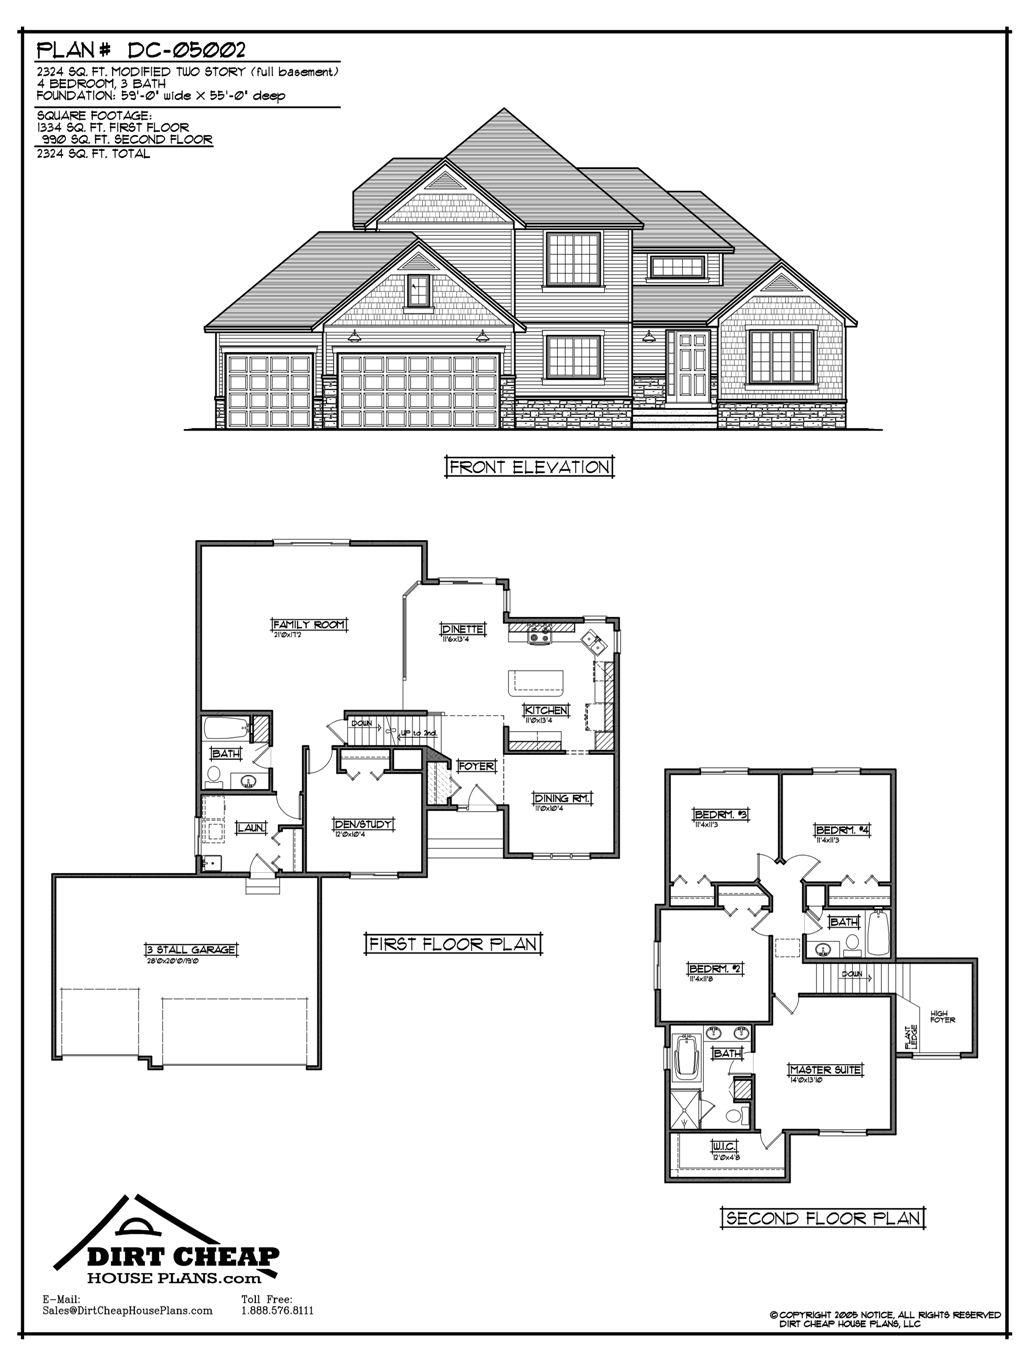 inexpensive two story house plans dc 05002 modified two